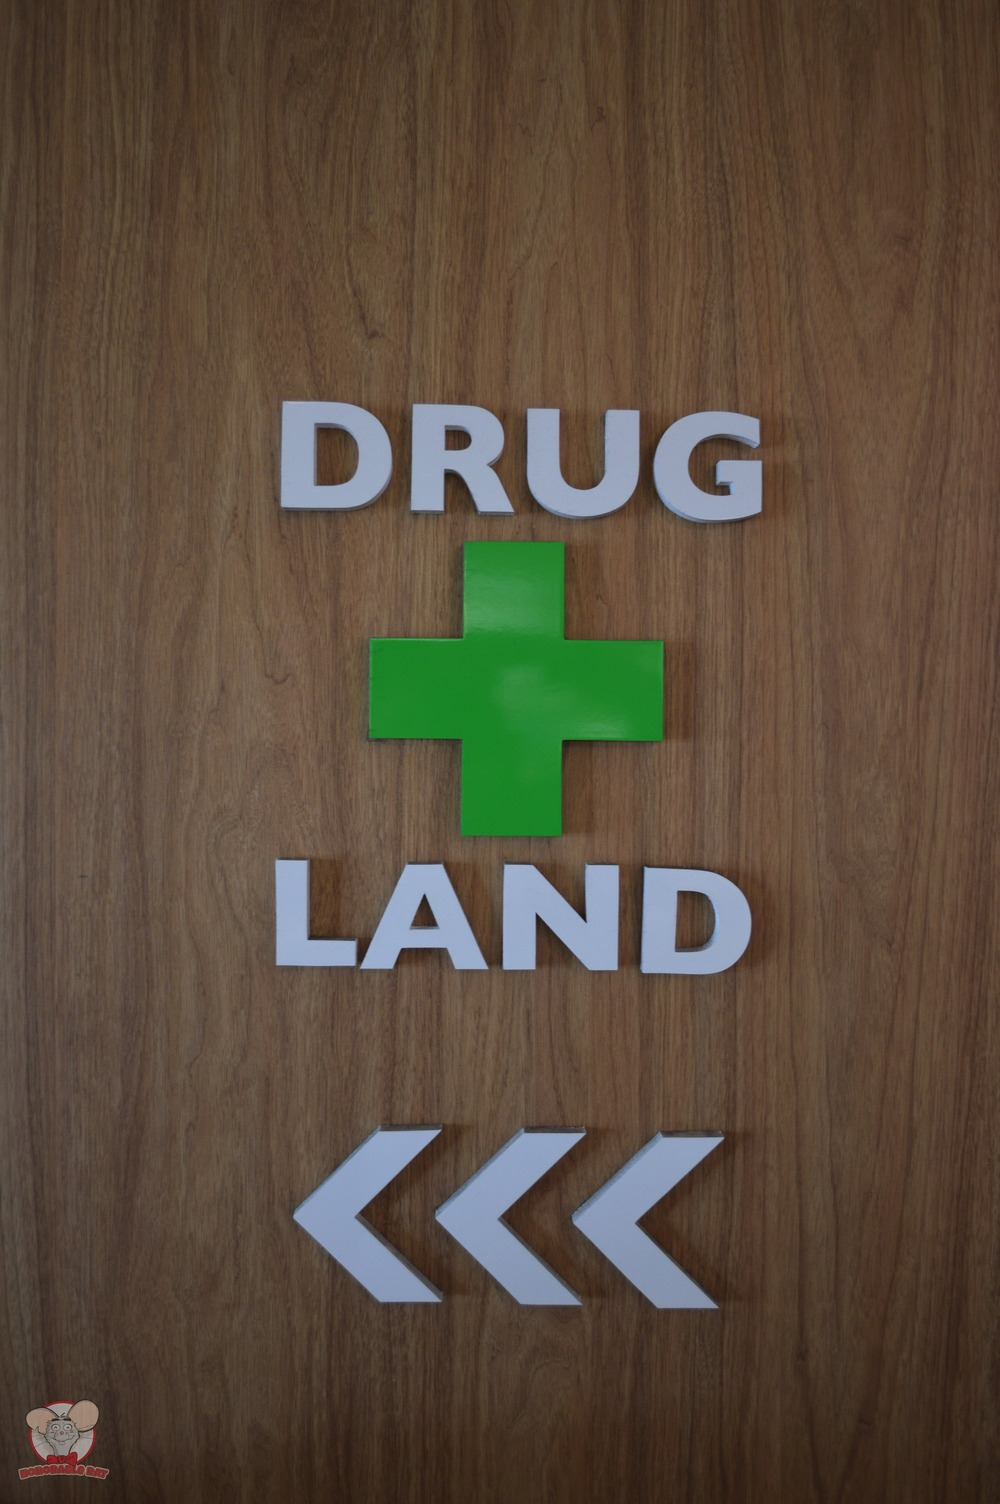 Welcome one and all to Drug Land